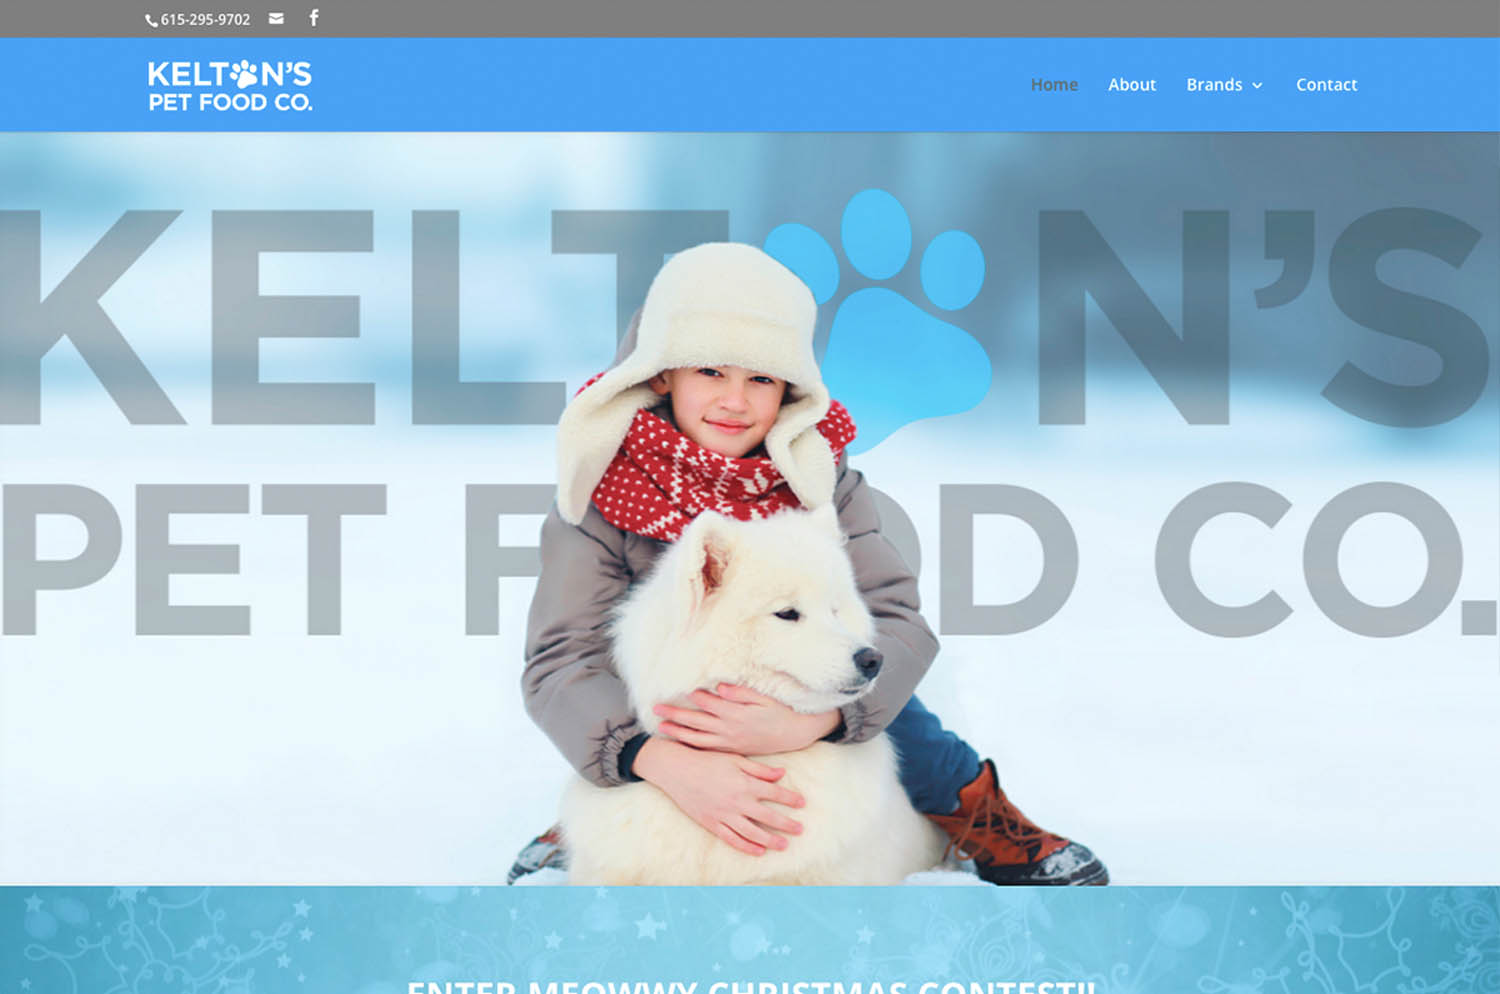 Kelton's Pet Food Co. Murfreesboro, TN - Website Image